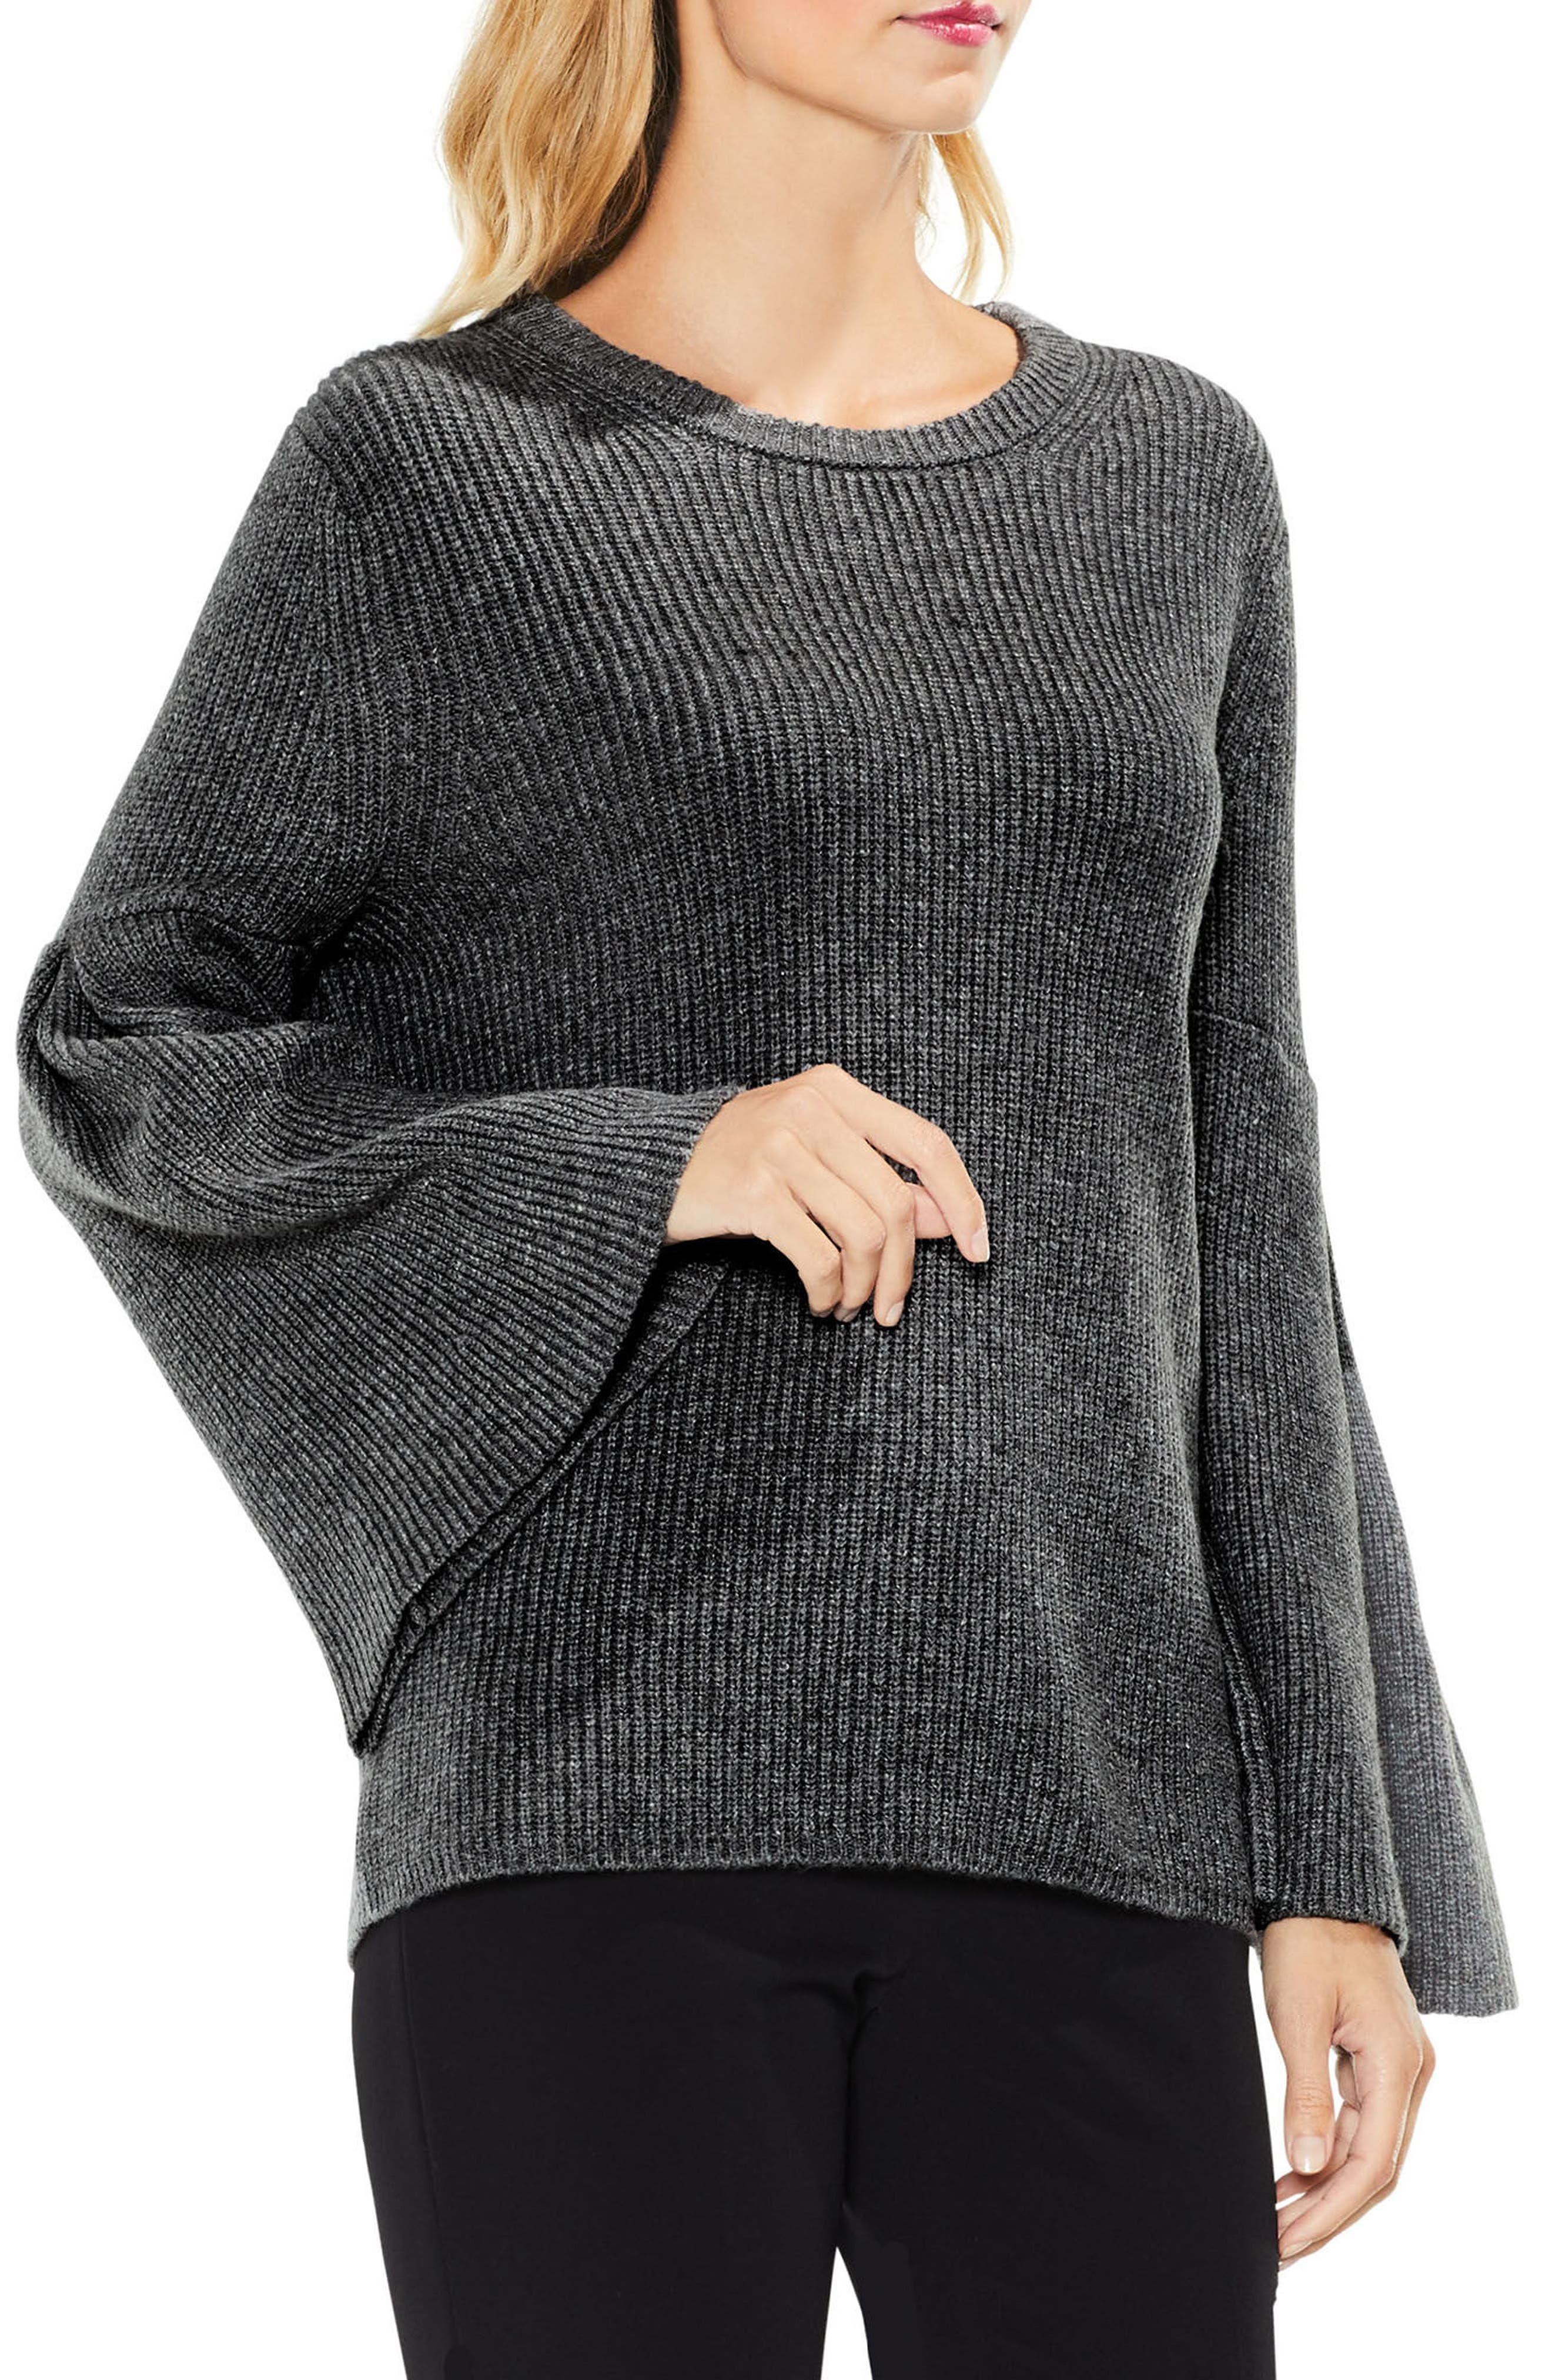 Alternate Image 1 Selected - Vince Camuto All Over Rib Bell Sleeve Sweater (Regular & Petite)